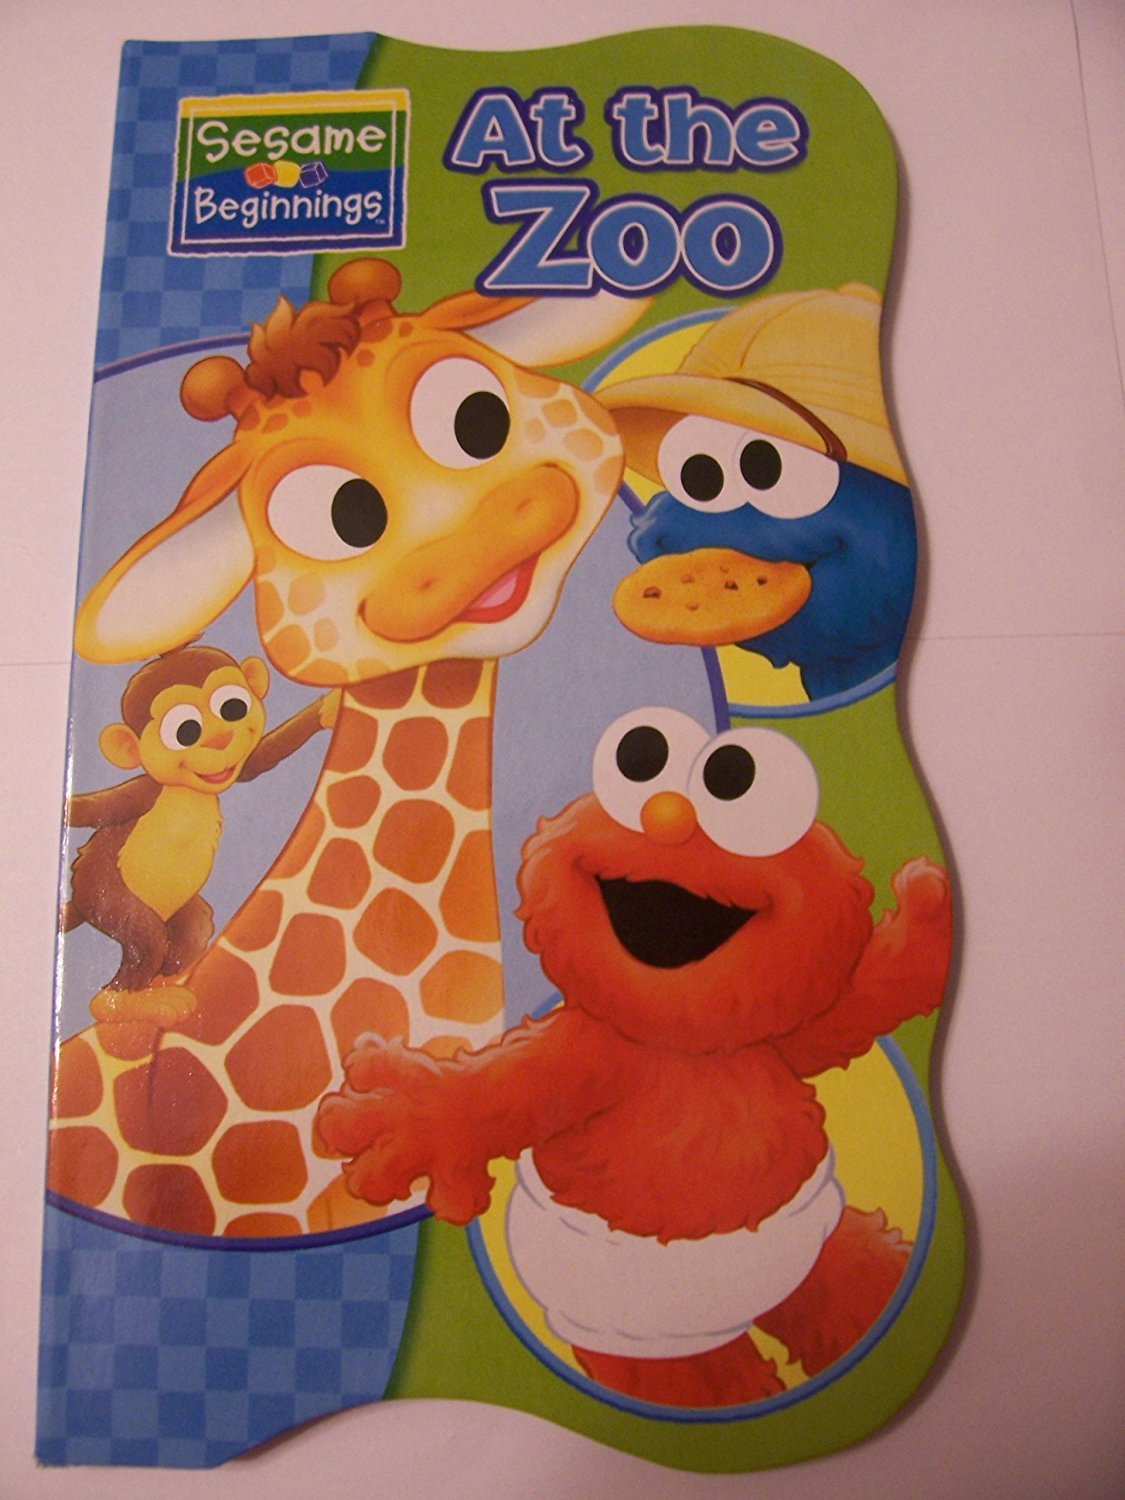 Sesame Beginnings Shaped Educational Board Books ~ At the Zoo